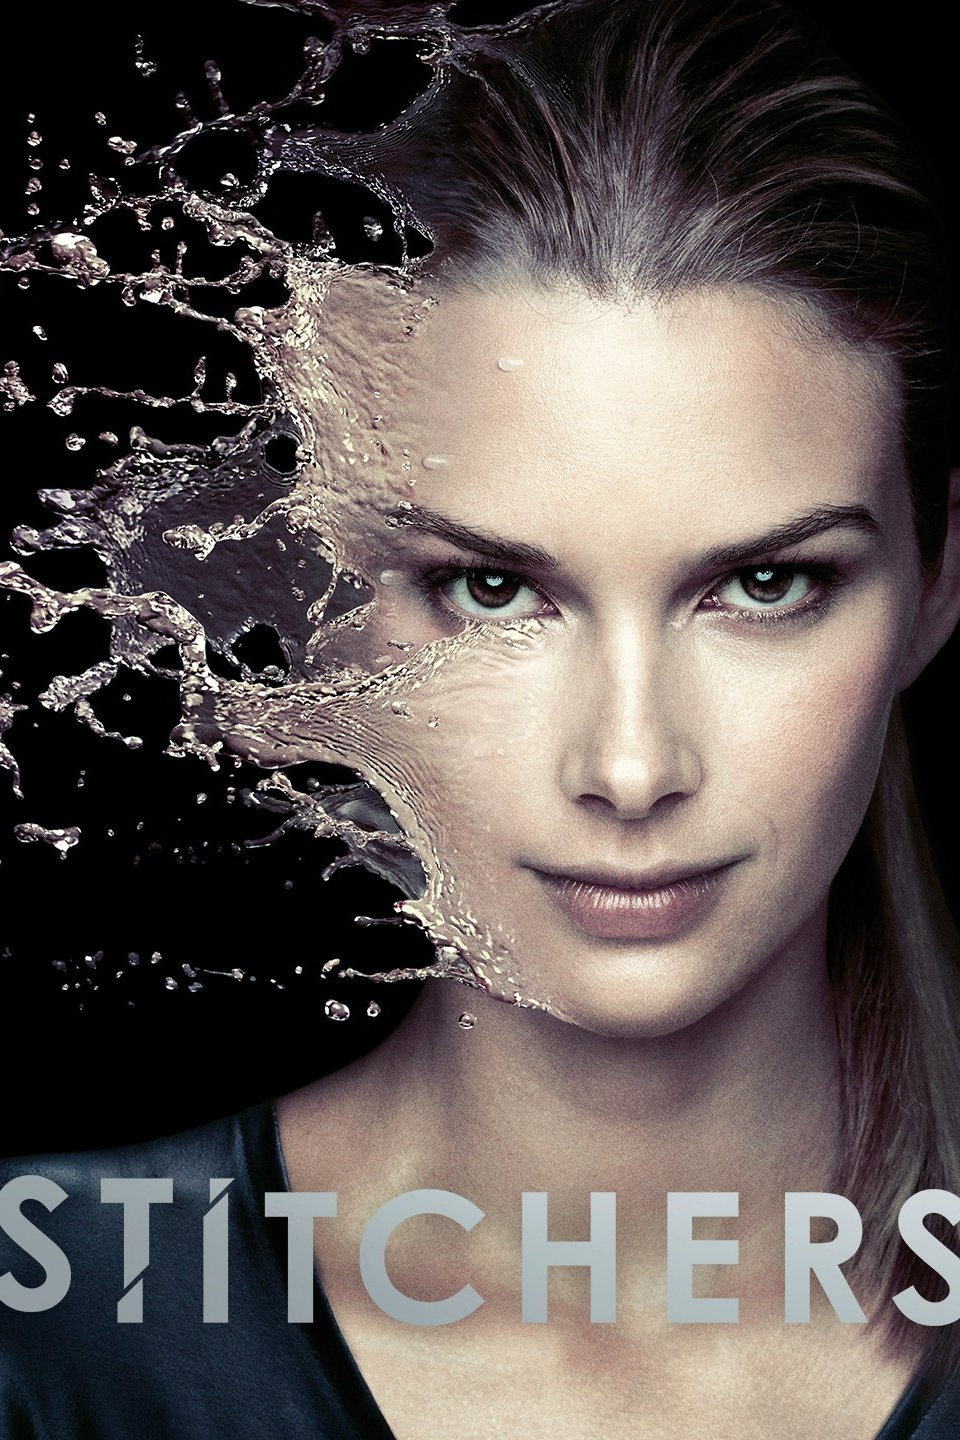 Stitchers Season 3 Episode 1 Download HDTV